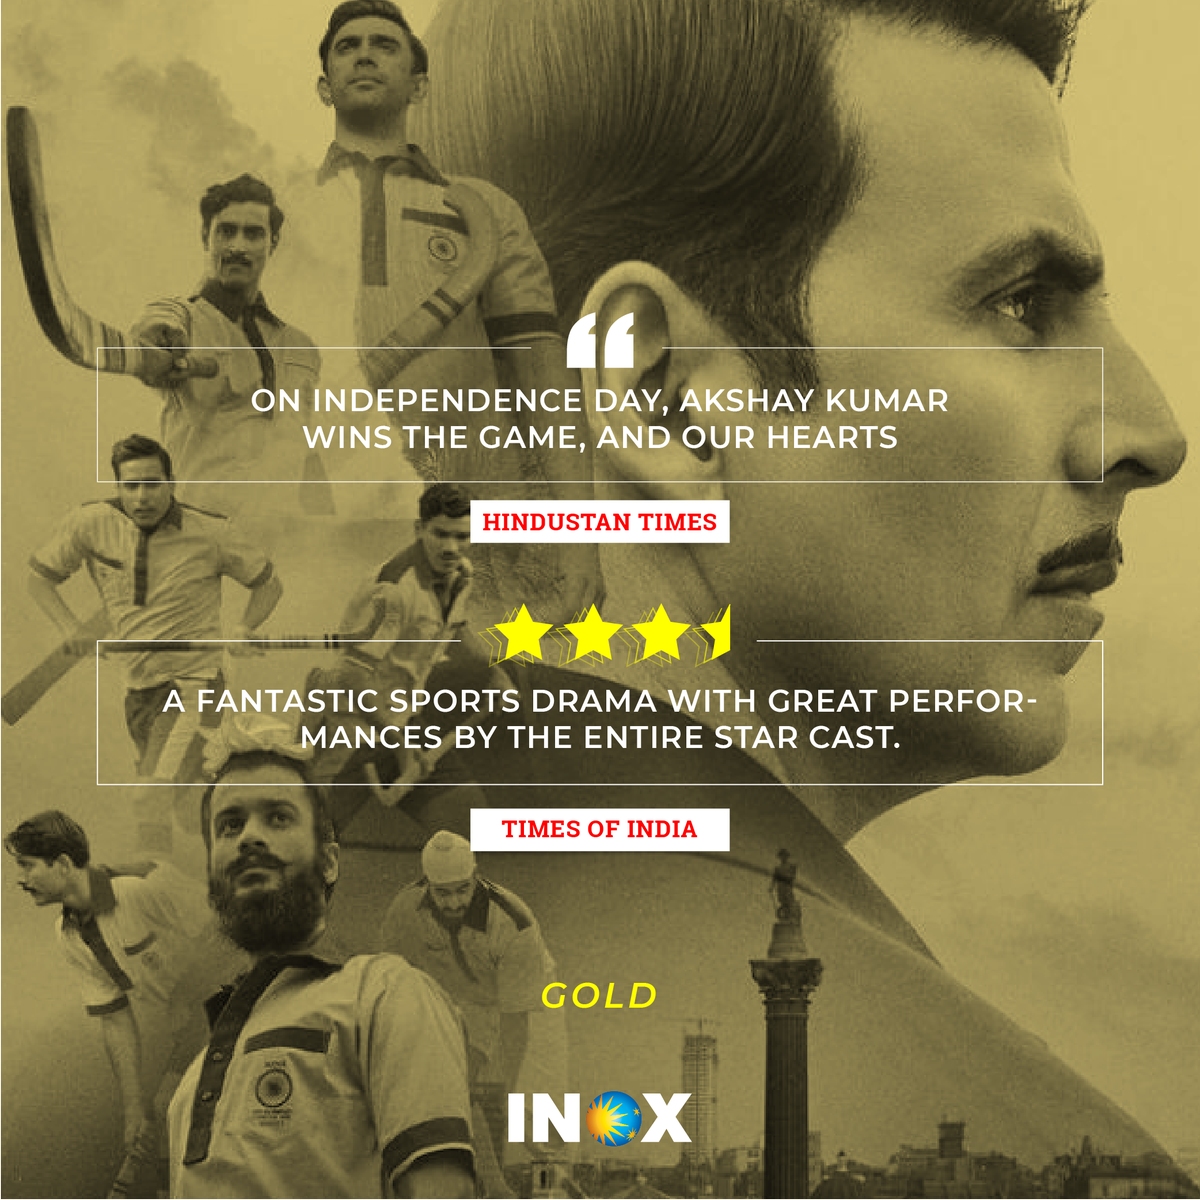 When #Gold wins a gold! Have you watched the movie yet? Share your take with us. If not, wait no more:  https:// bit.ly/2McH2qU  &nbsp;    @excelmovies @akshaykumar @Roymouni @ItsVineetSingh @FarOutAkhtar @reemakagti #SunnyKaushal @kapoorkkunal @ritesh_sid @TheAmitSadh<br>http://pic.twitter.com/FyFZfmuWgT